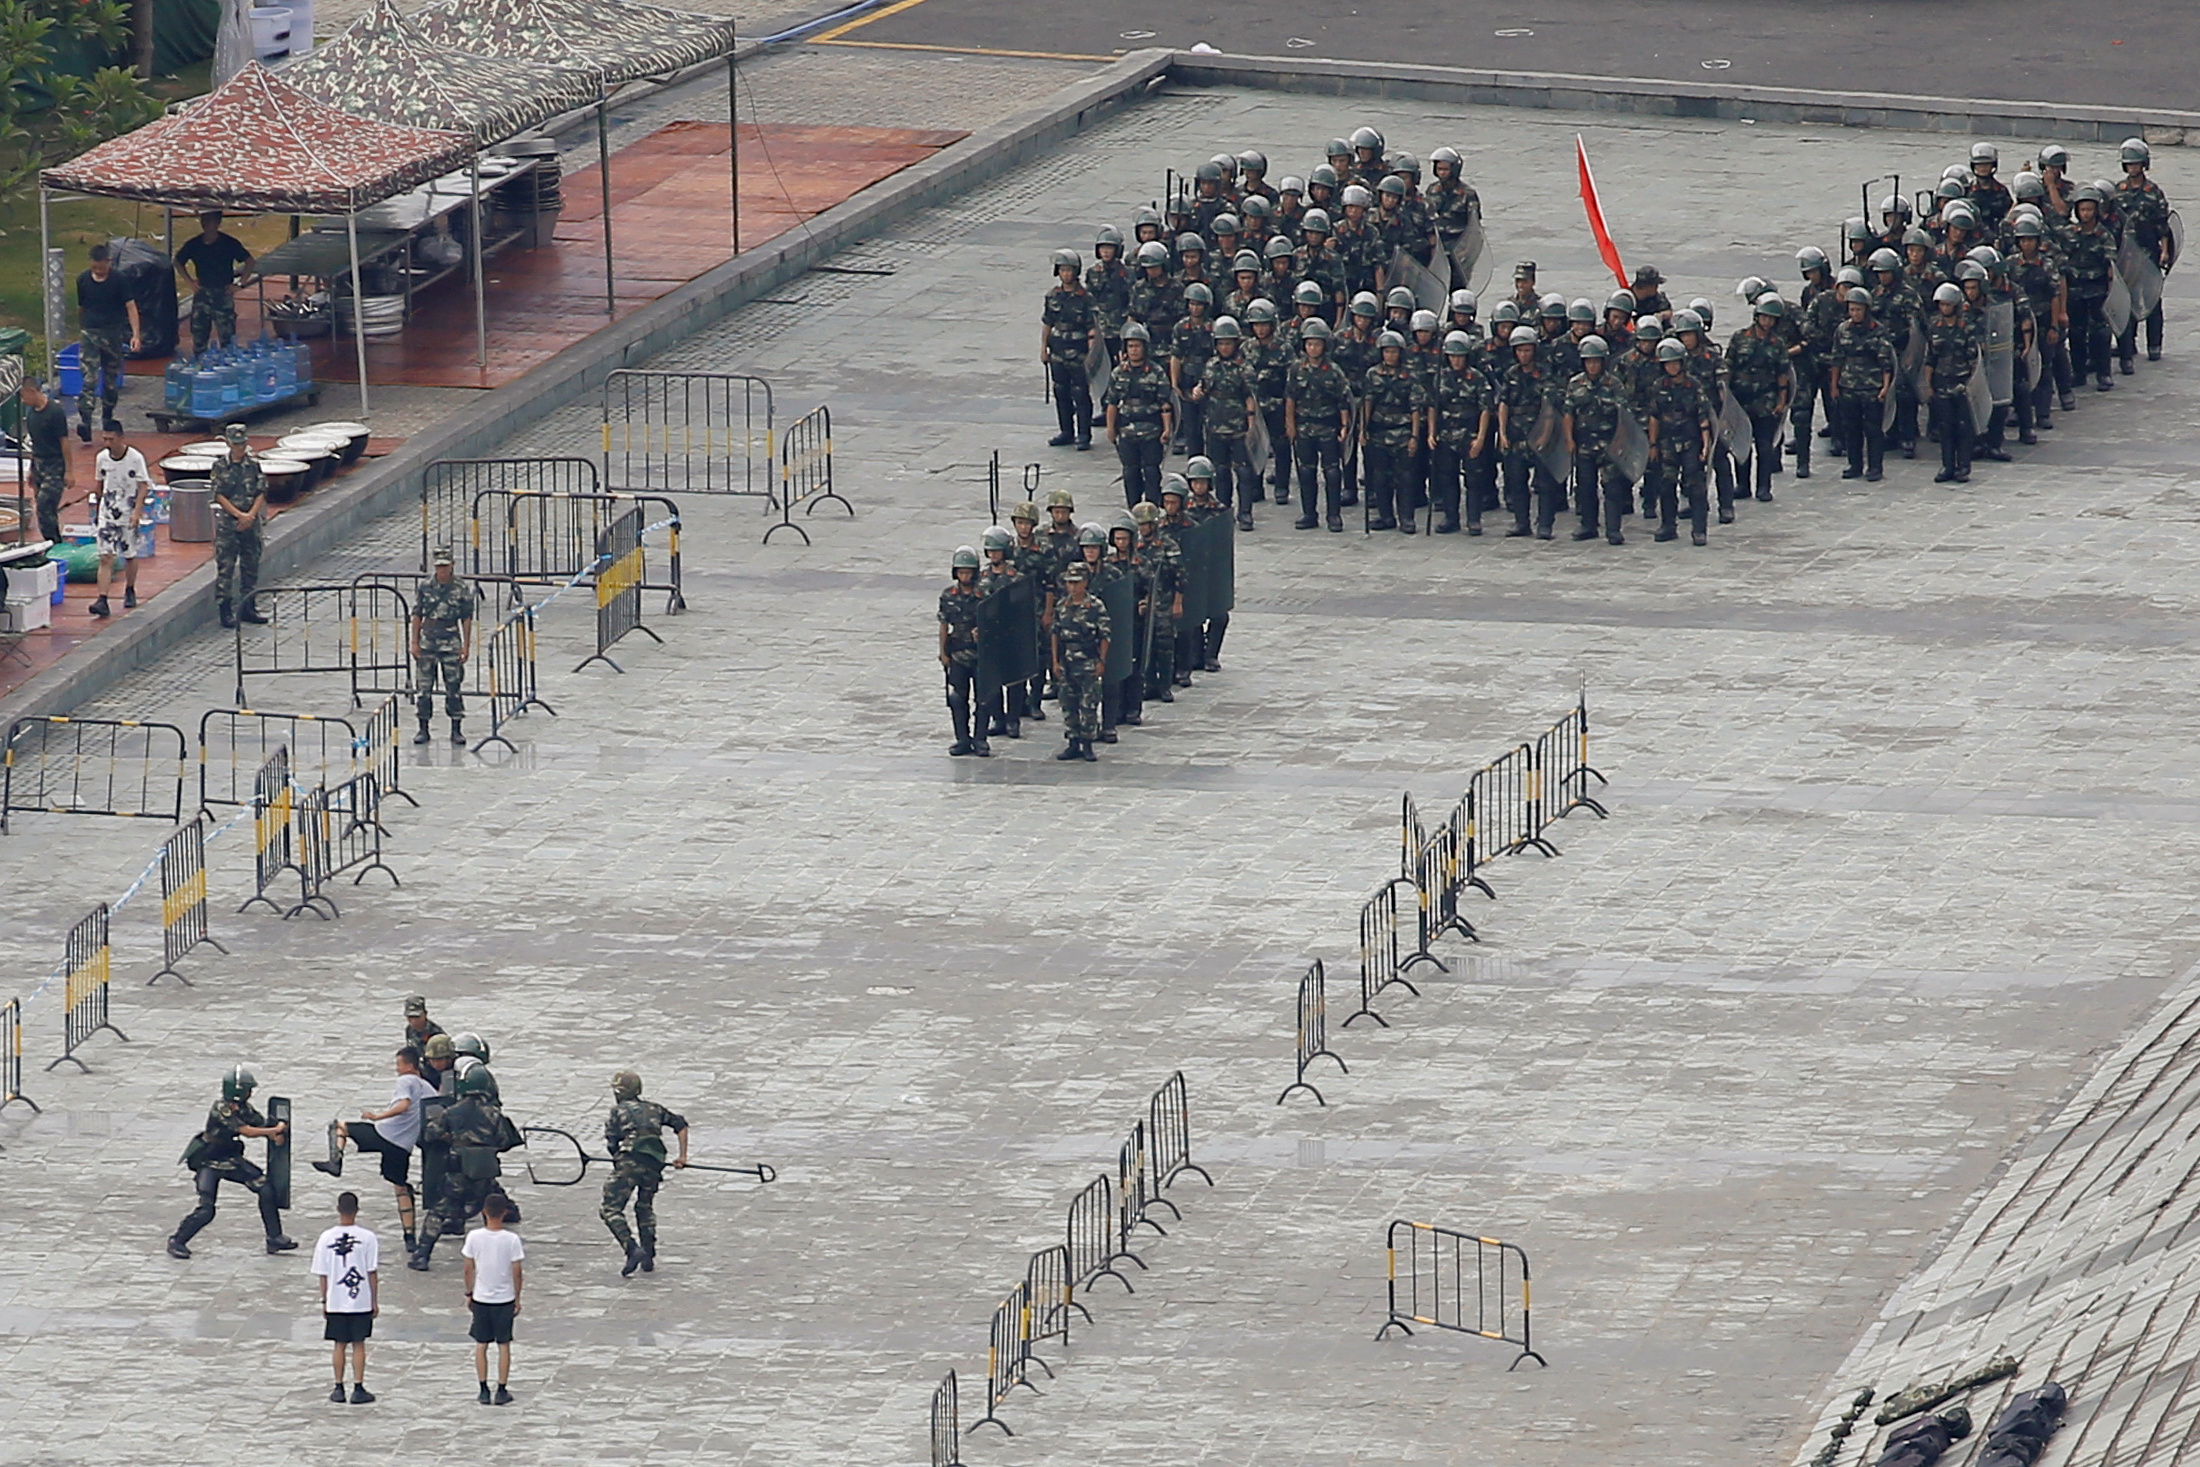 Chinese police have been practicing with terrifying fork devices amid protests in Hong Kong. (Reuters)